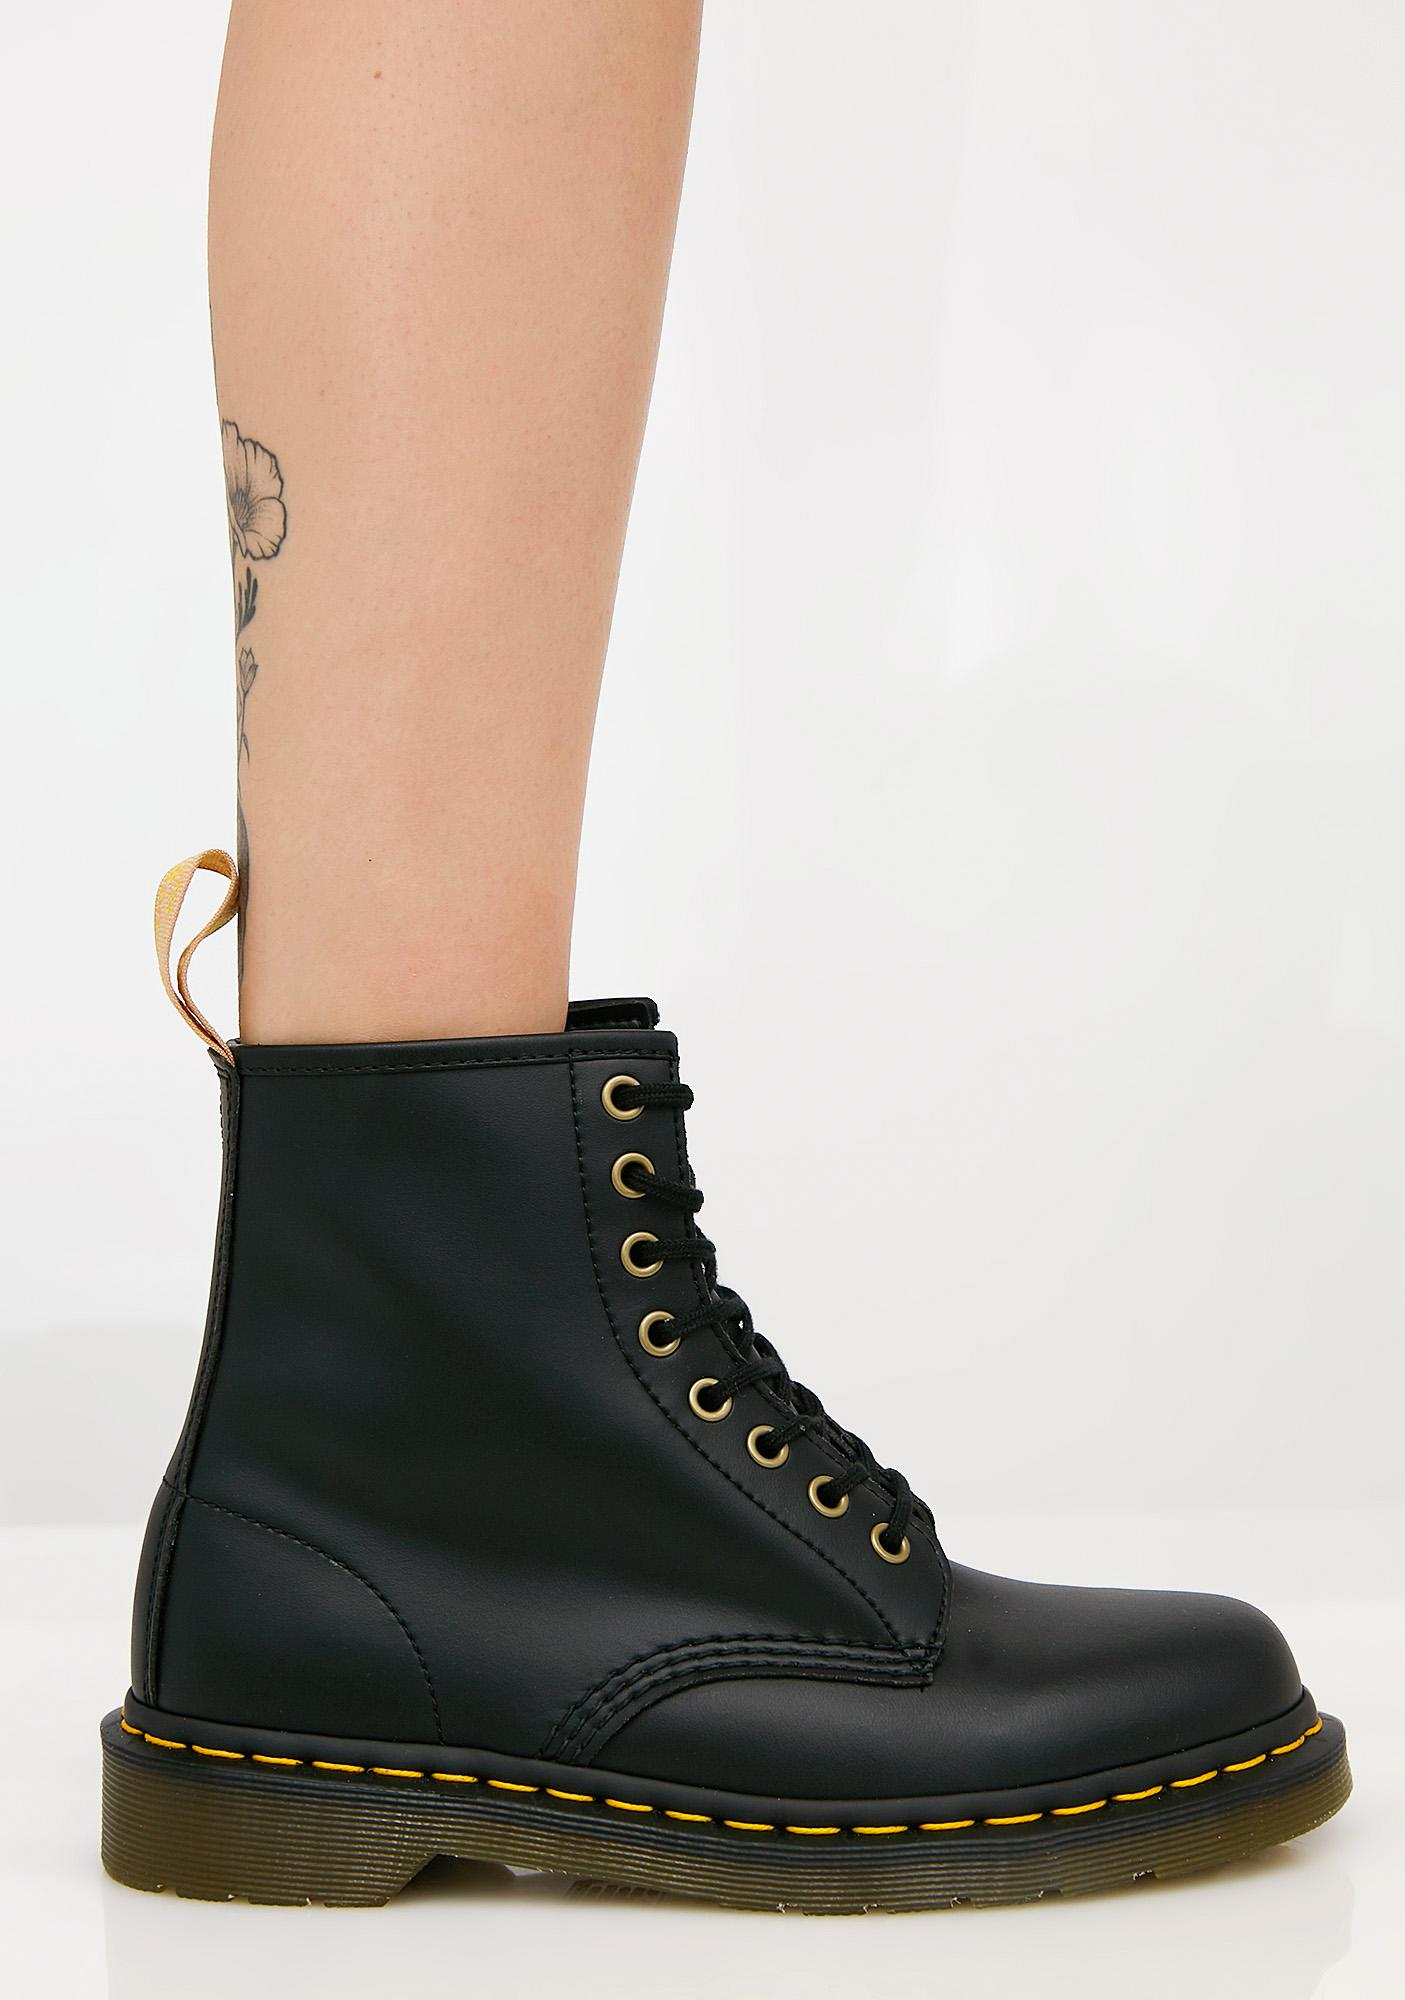 Vegan Lace Up 8 Eye Boot - Black Dr. Martens gvJGX8D